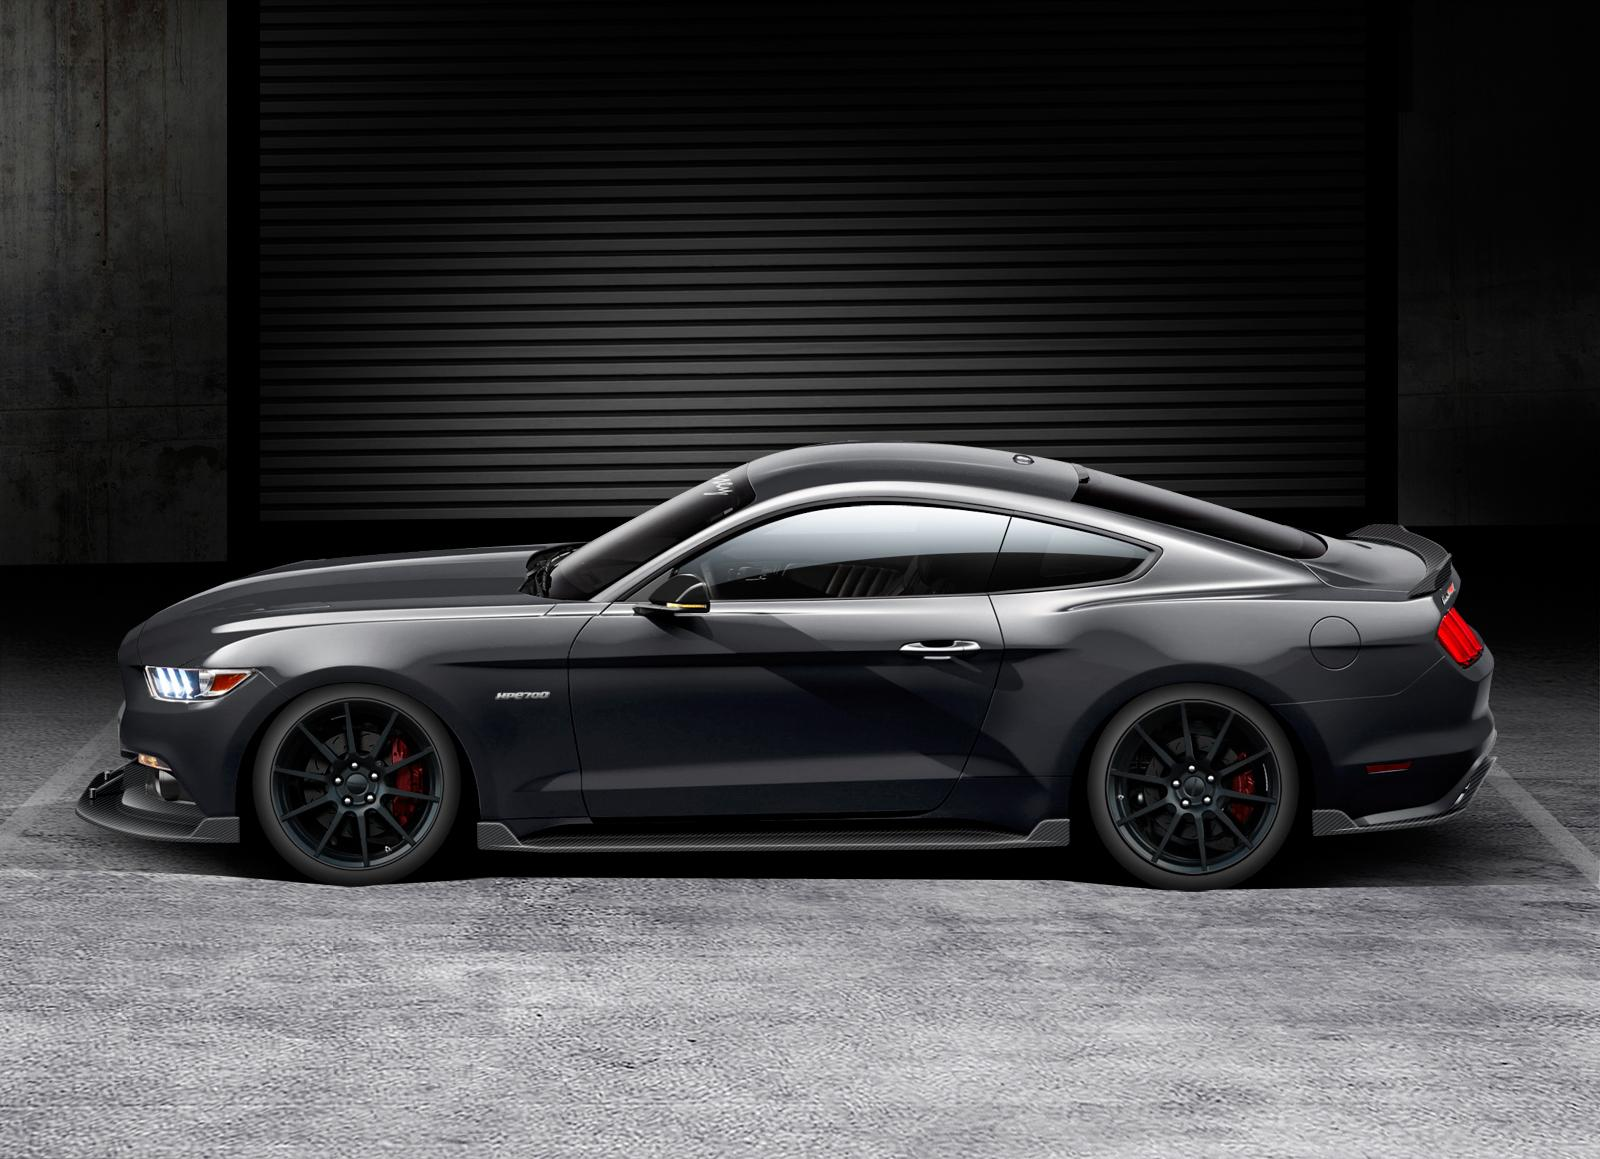 hennessey hpe700 supercharged mustang hikes the 2015 model year 39 s output to 717 hp autoevolution. Black Bedroom Furniture Sets. Home Design Ideas